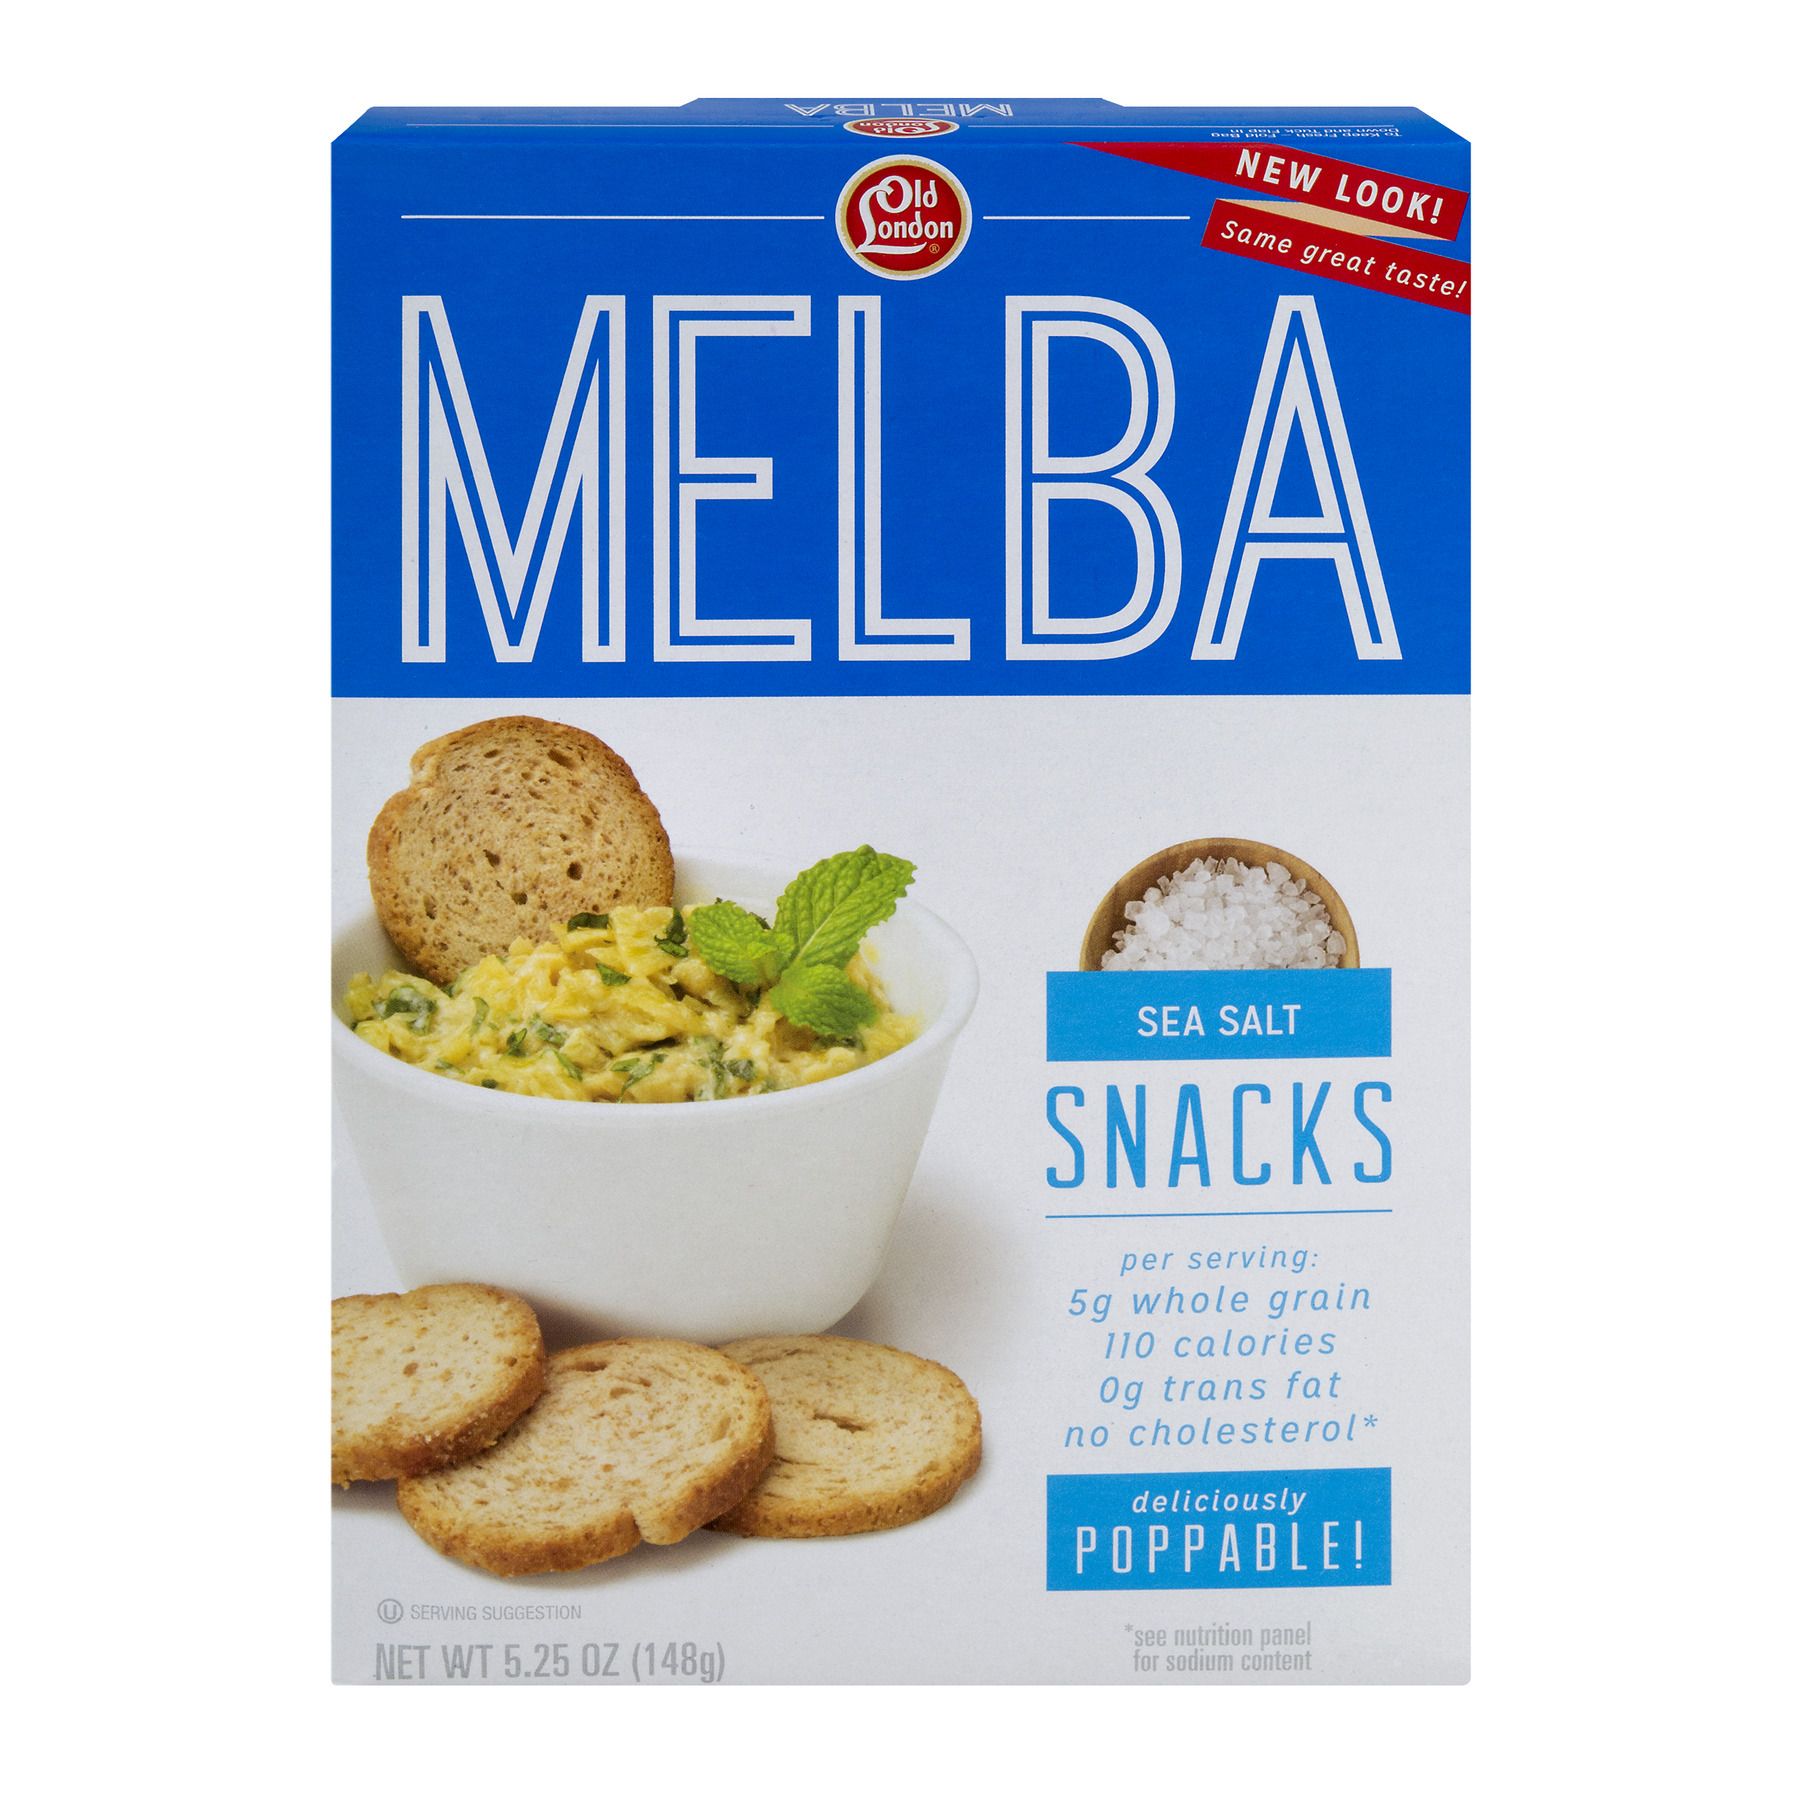 Old London Melba Snacks Sea Salt, 5.25 OZ